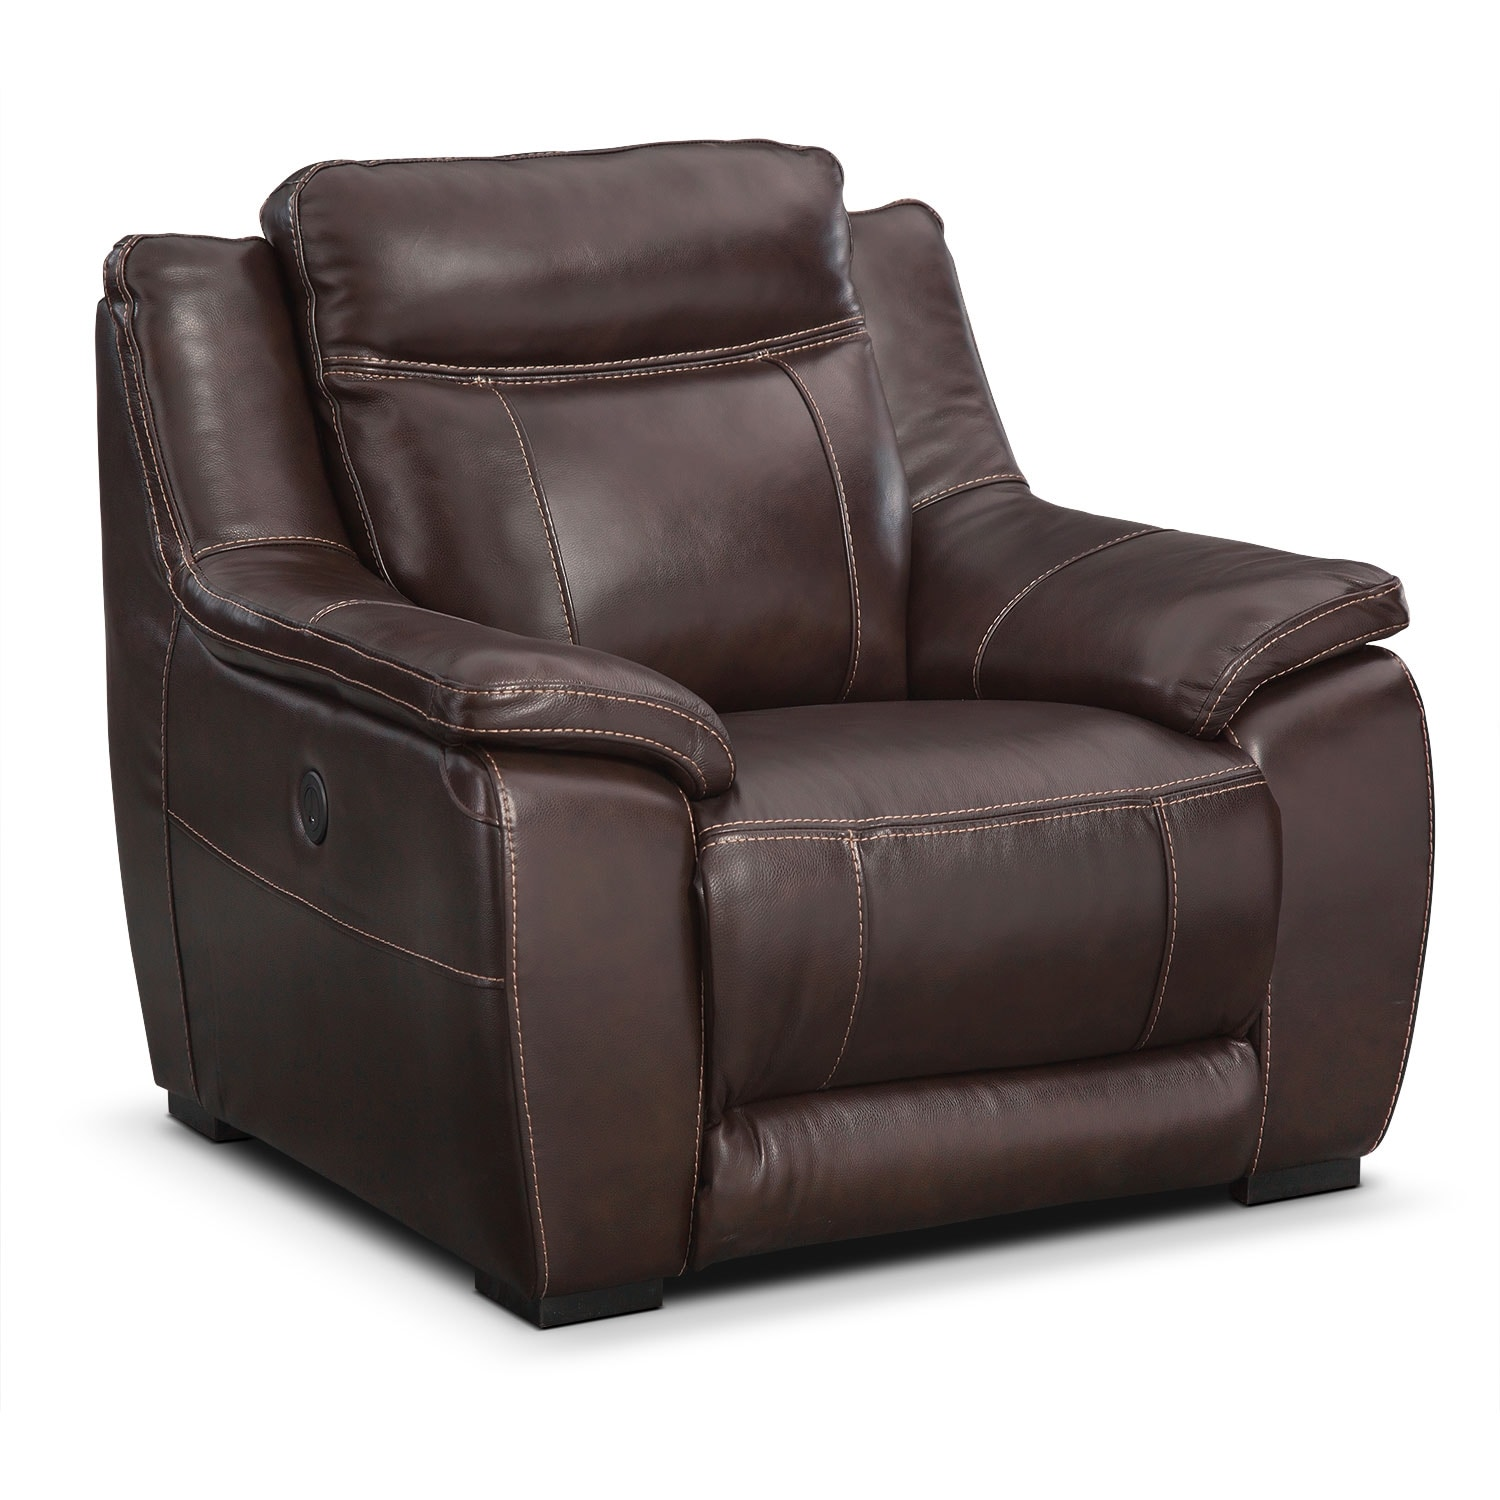 Was $899.99 Today $809.99 Lido Power Recliner   Brown By One80